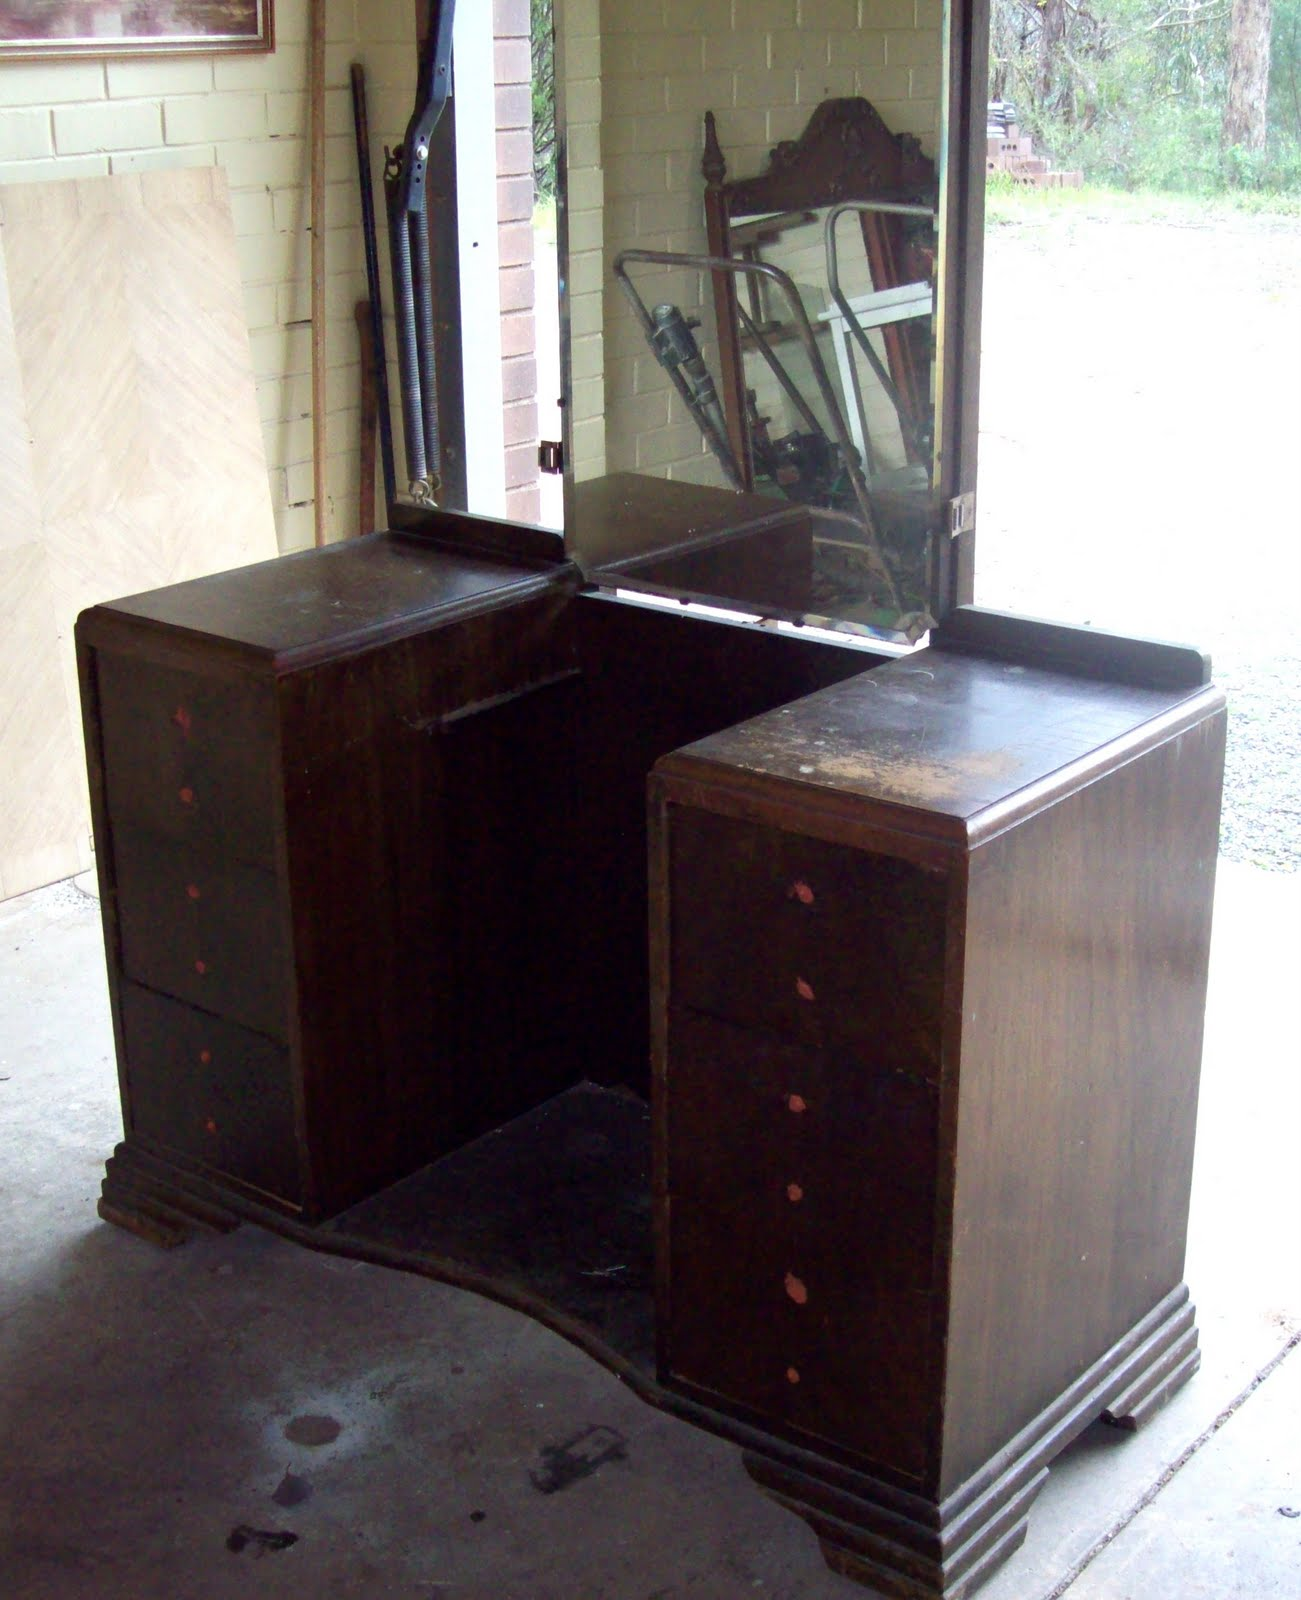 I Think It S Probably Fair To Say This Old Deco Dressing Table Wasn T Gonna Protest About Getting A Bit Of Facelift Came Me For The Bargain Price